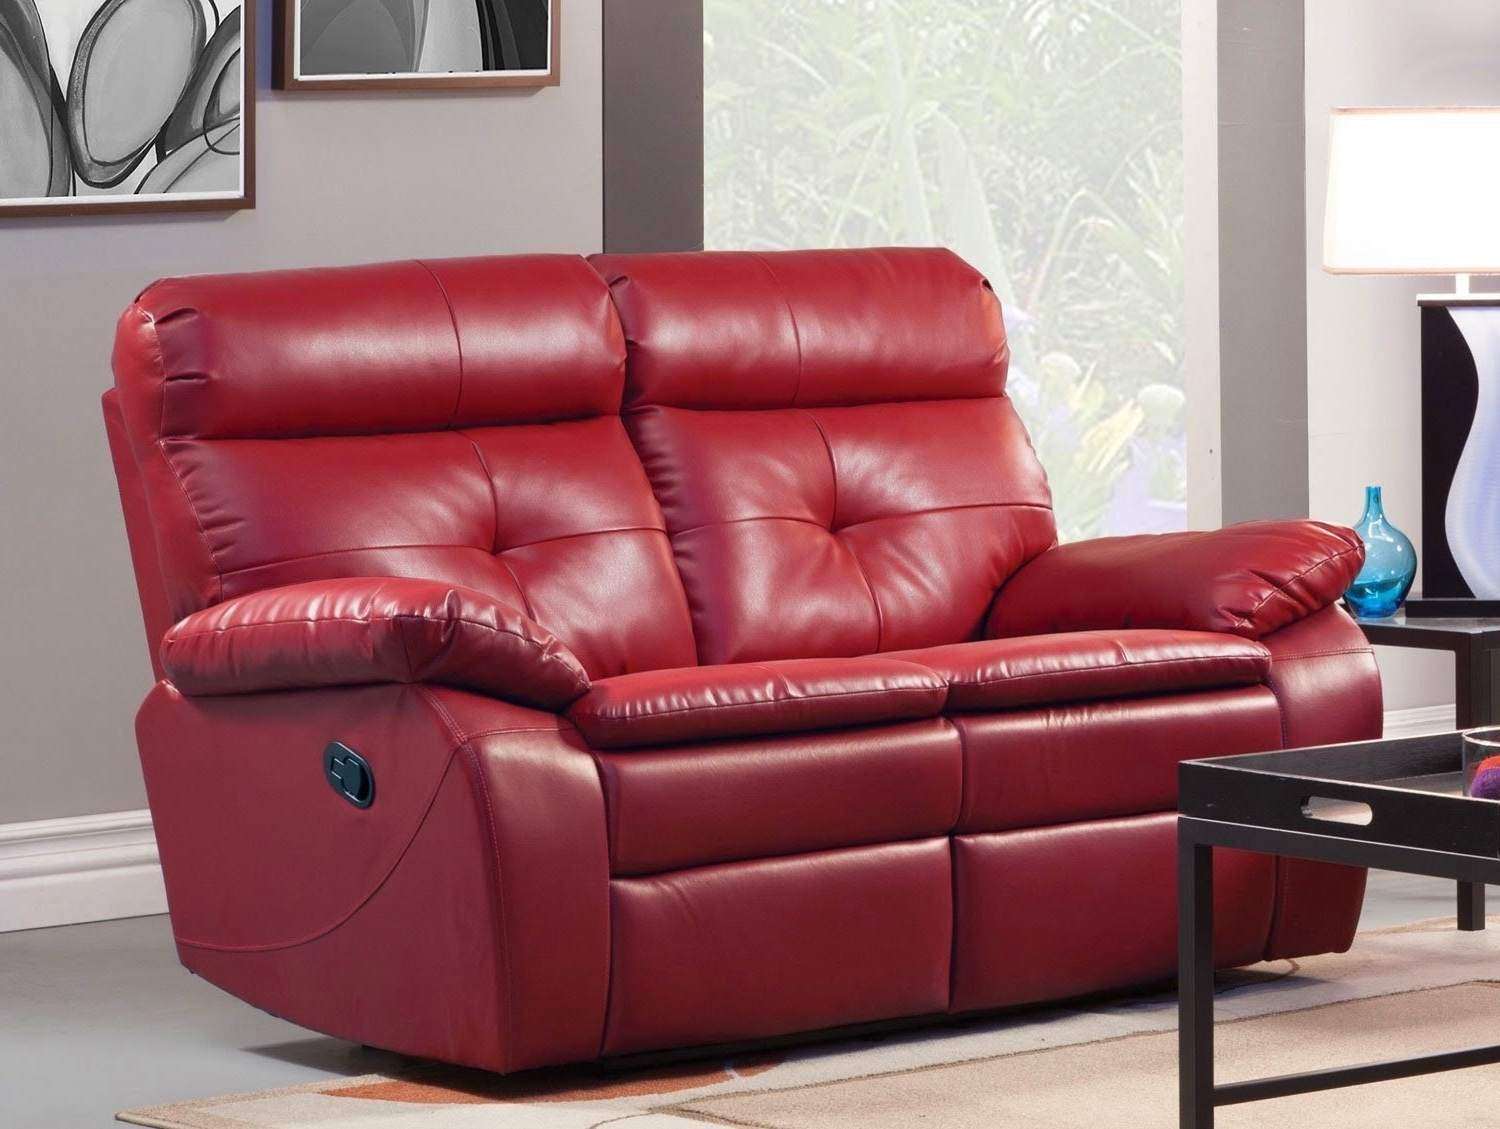 Red Leather Reclining Sofas And Loveseats Throughout Most Recent The Best Reclining Sofa Reviews: Red Leather Reclining Sofa And (View 11 of 15)